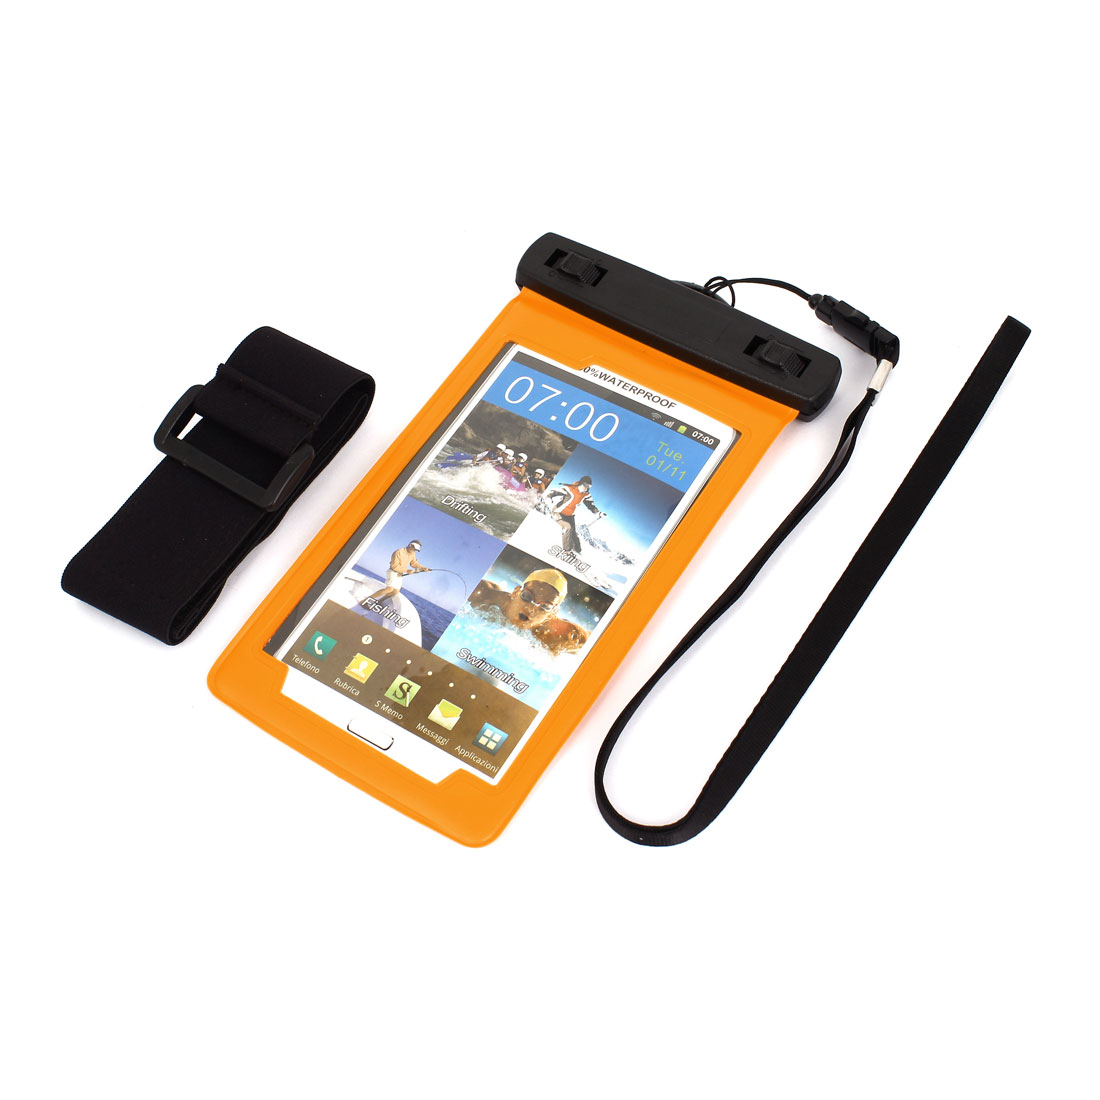 Mobile Phone Underwater Waterproof Case Dry Bag Skin Cover Pouch Saver Orange